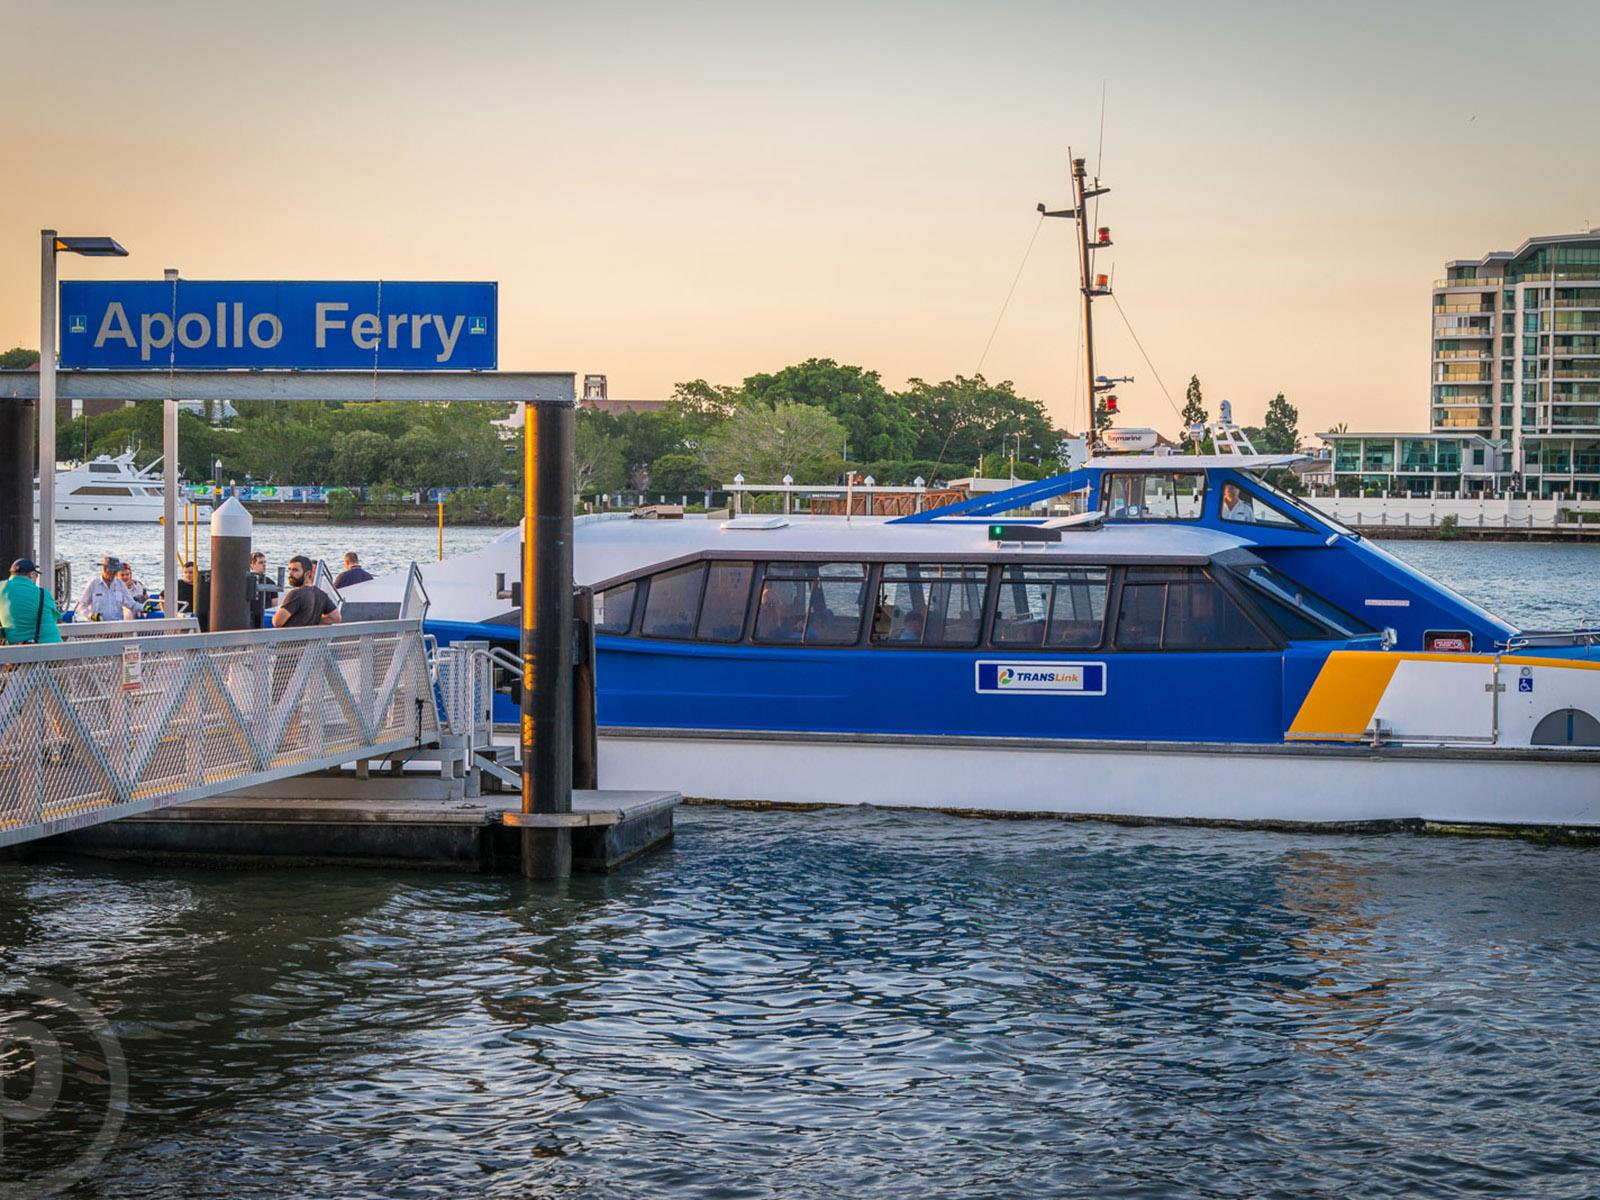 Apollo Ferry